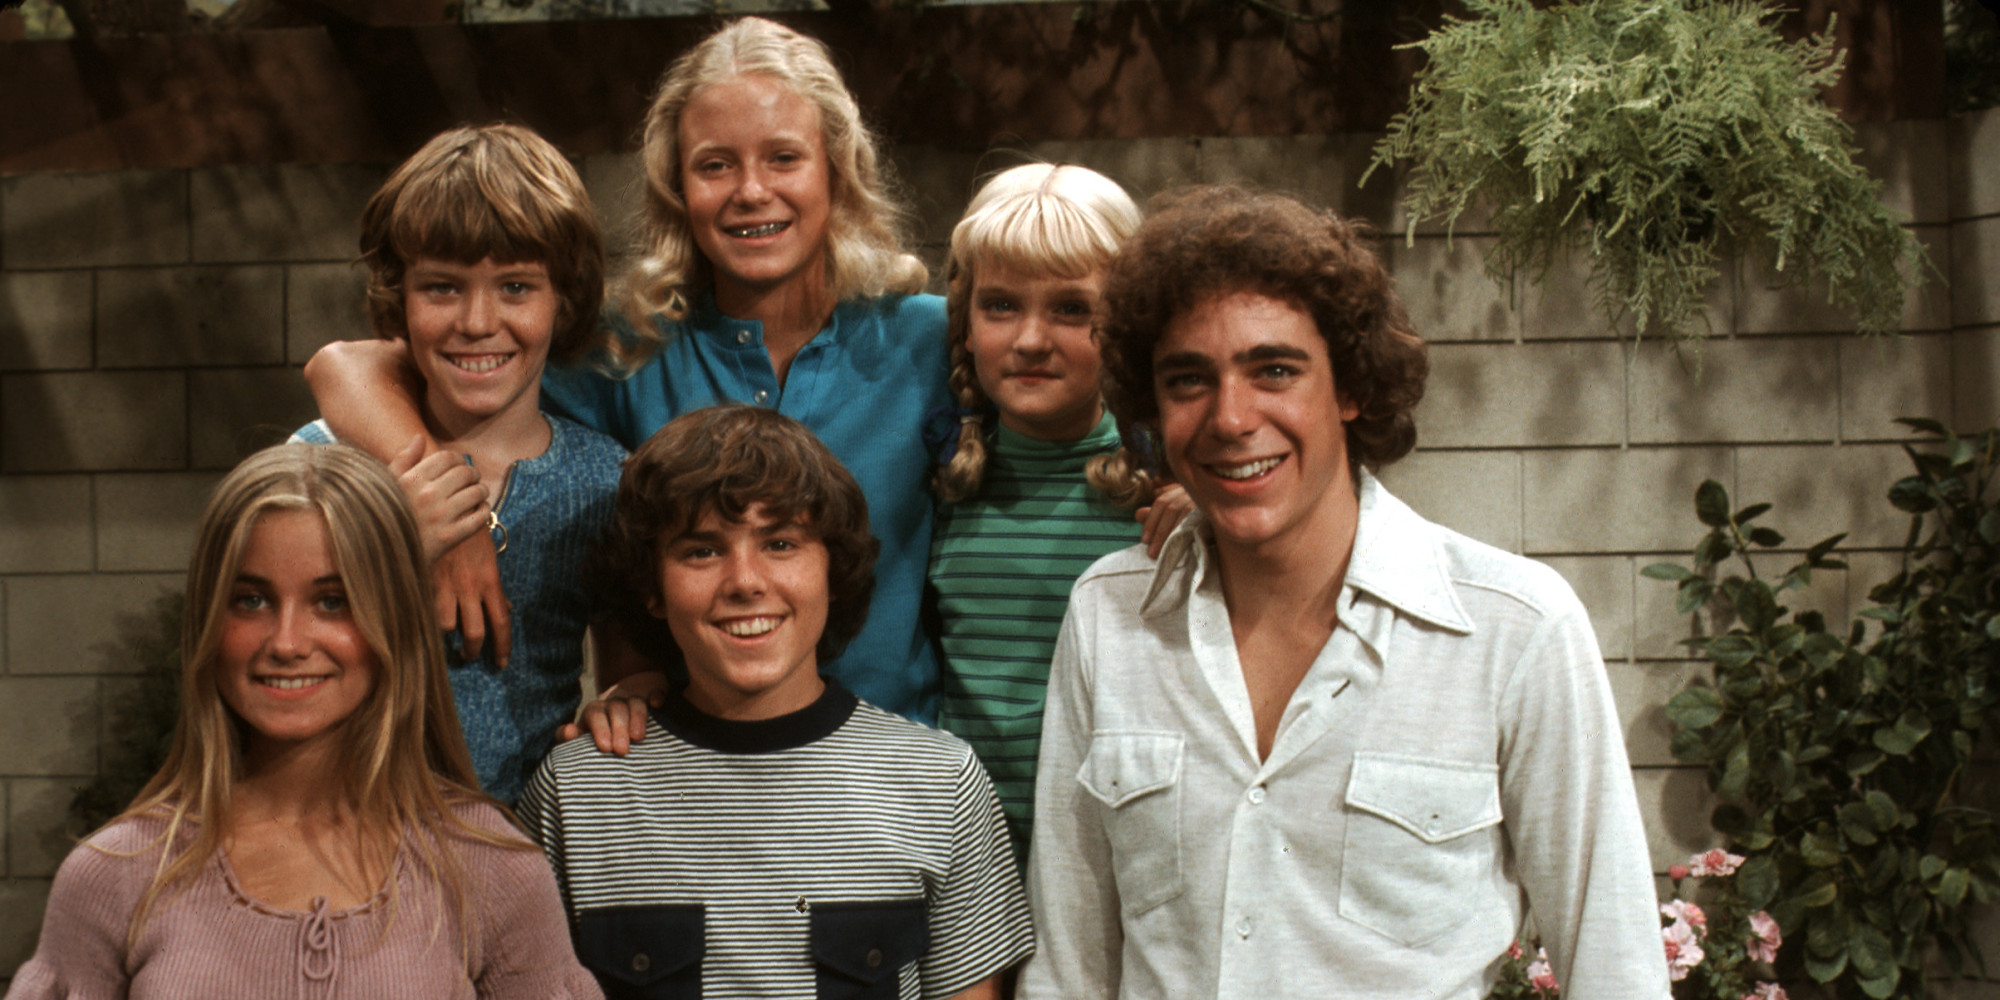 Accept. Teen pictures of marcia brady